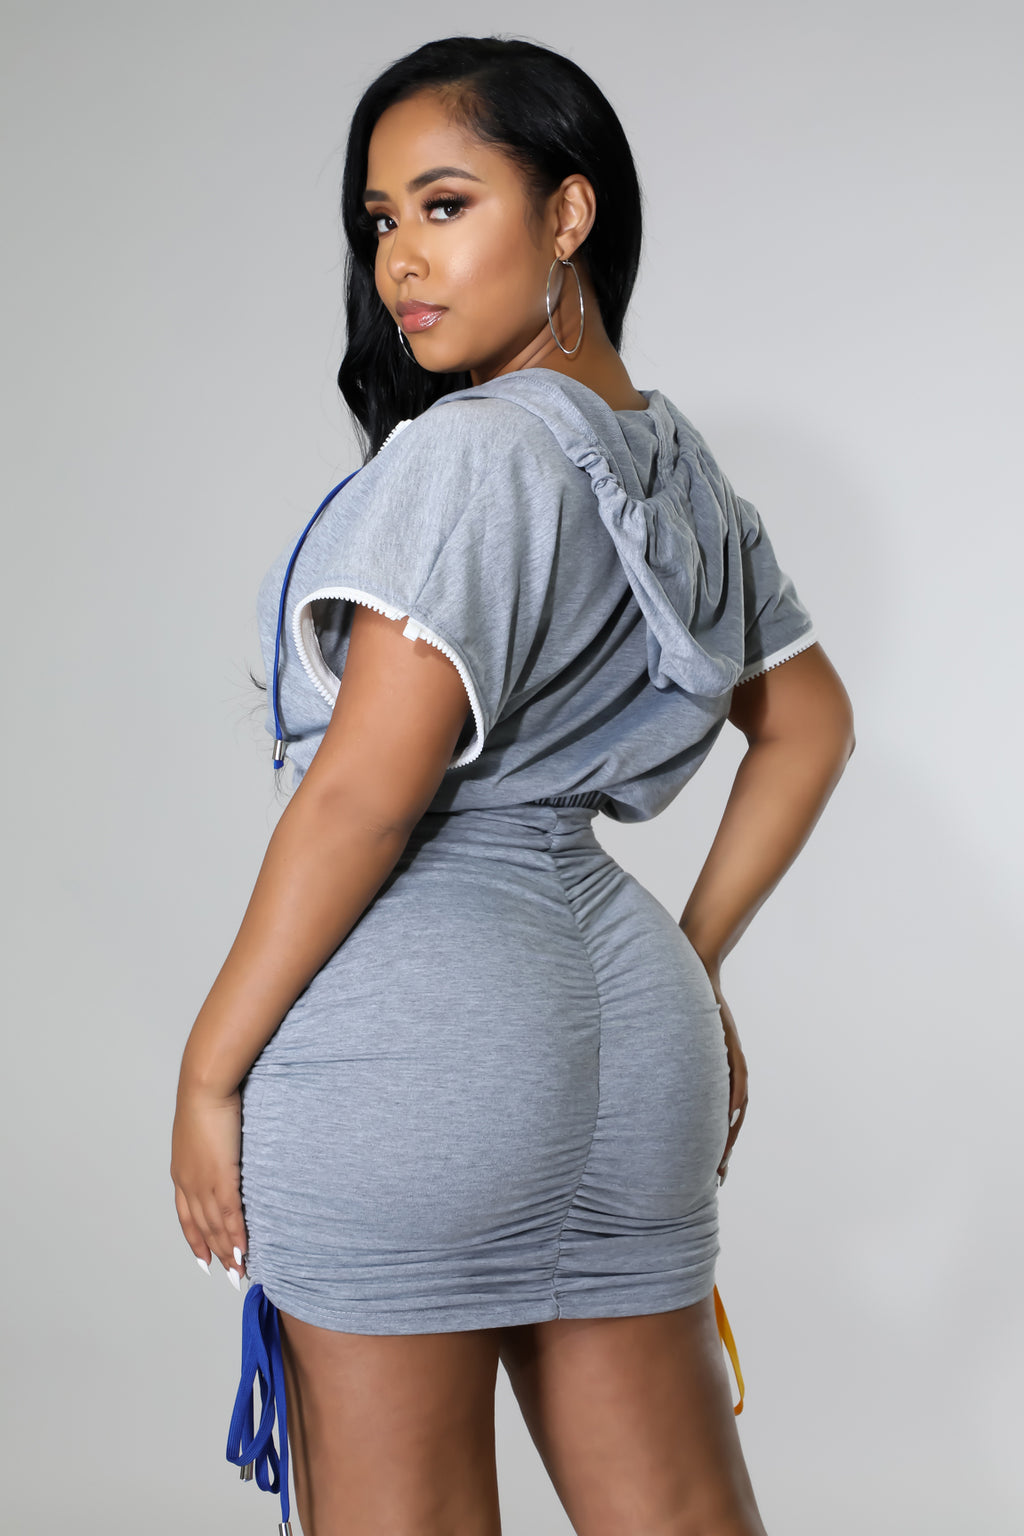 Twist Tie Dye Skirt Set | GitiOnline